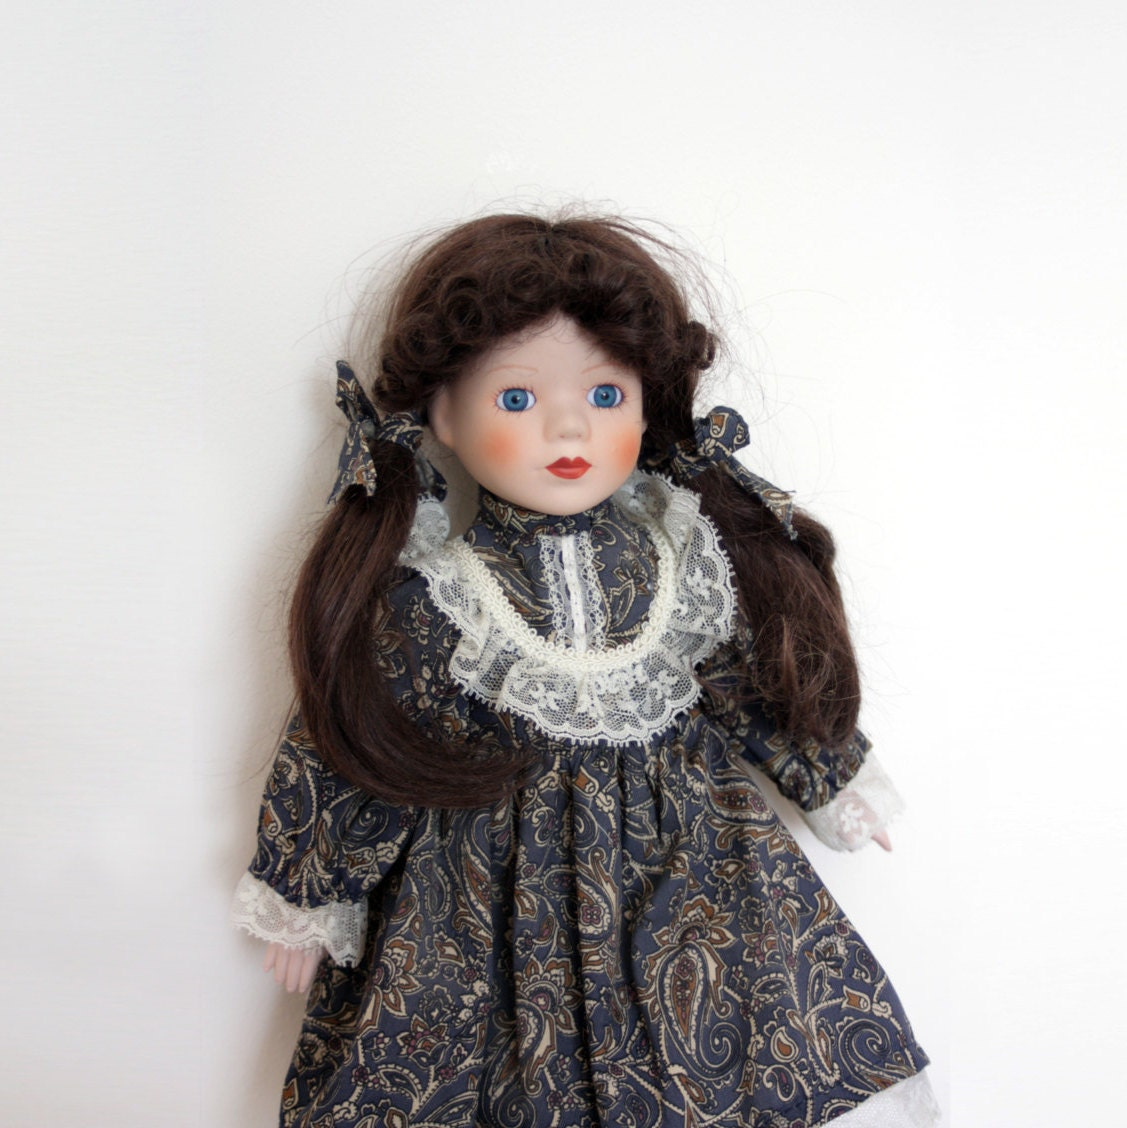 how to tell how old a porcelain doll is